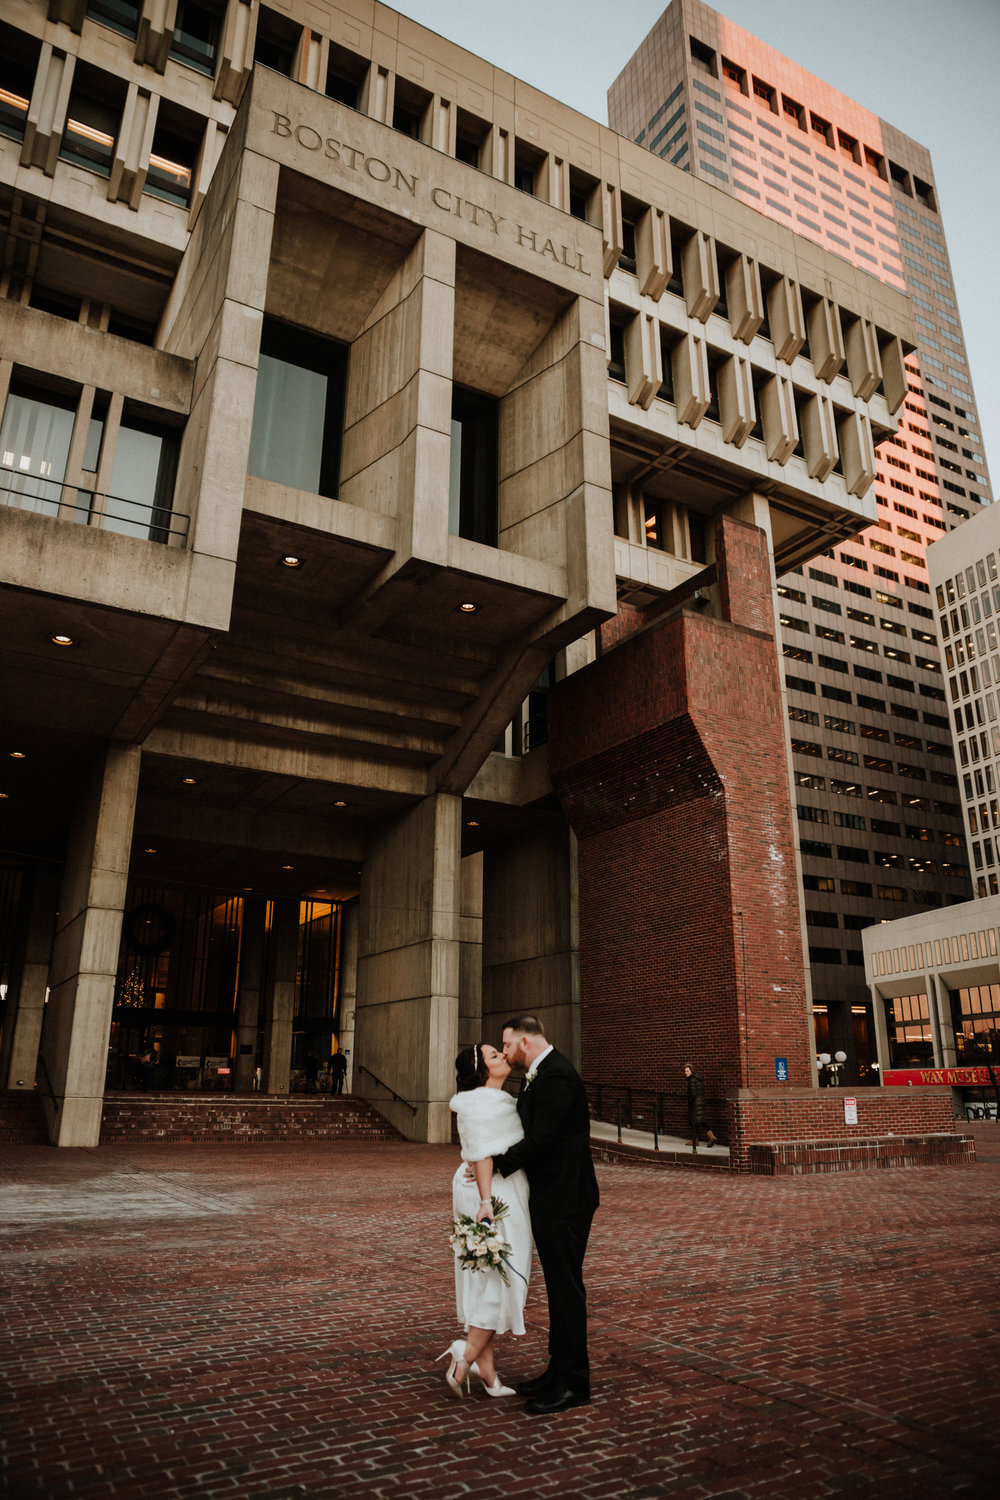 Massachusetts Wedding Photographer | New England Wedding Photographer | Western Mass Wedding Photographer | Boston Wedding Photographer  | Boston City Hall Elopement